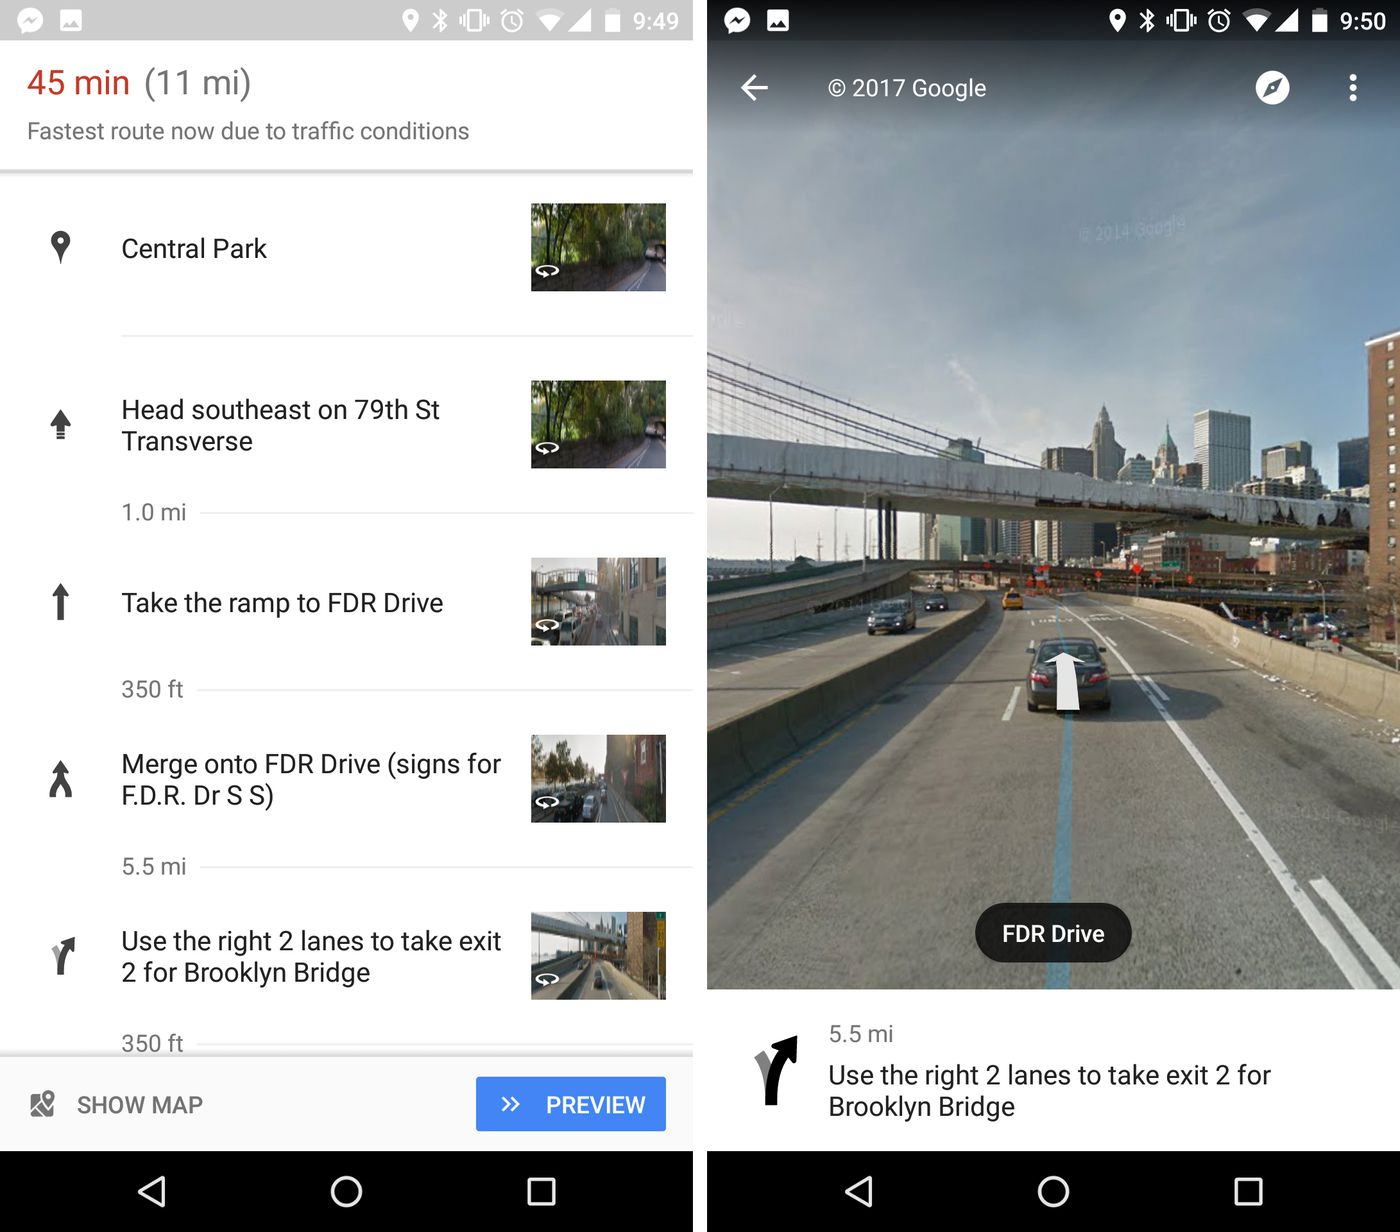 Google Maps Now Uses Street View To Show You Exactly Where To Make